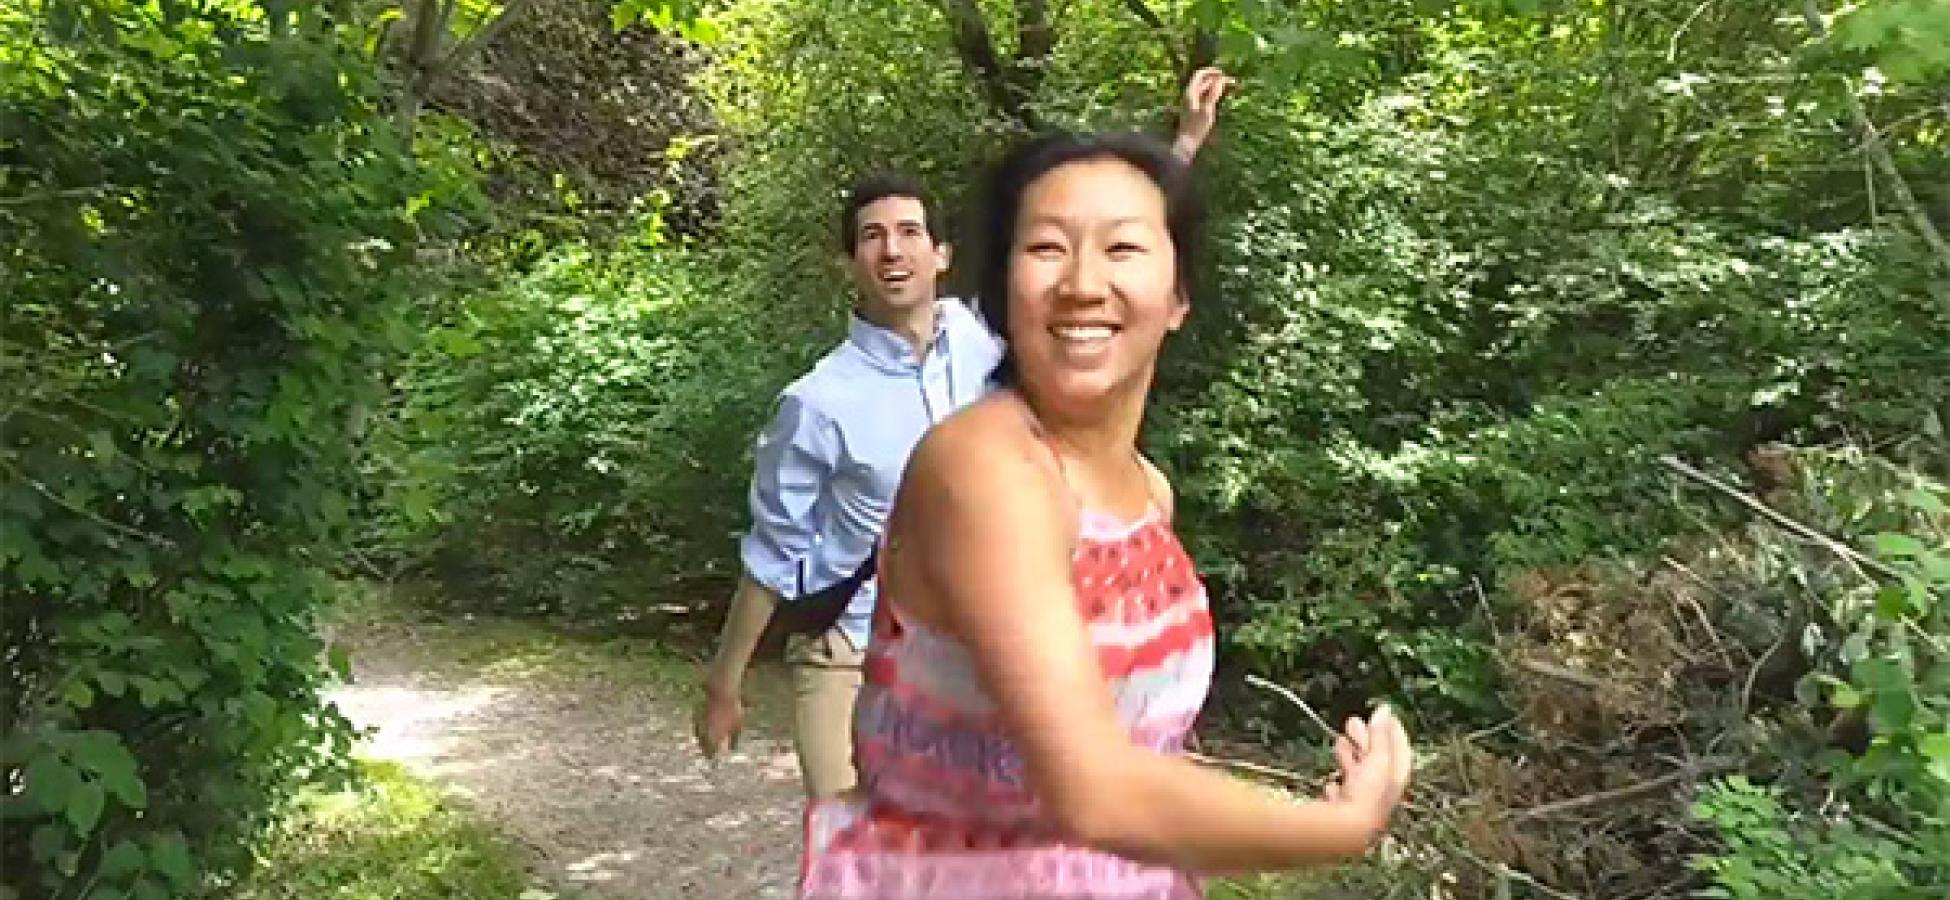 two dancers in a park setting dash smiling toward the camera